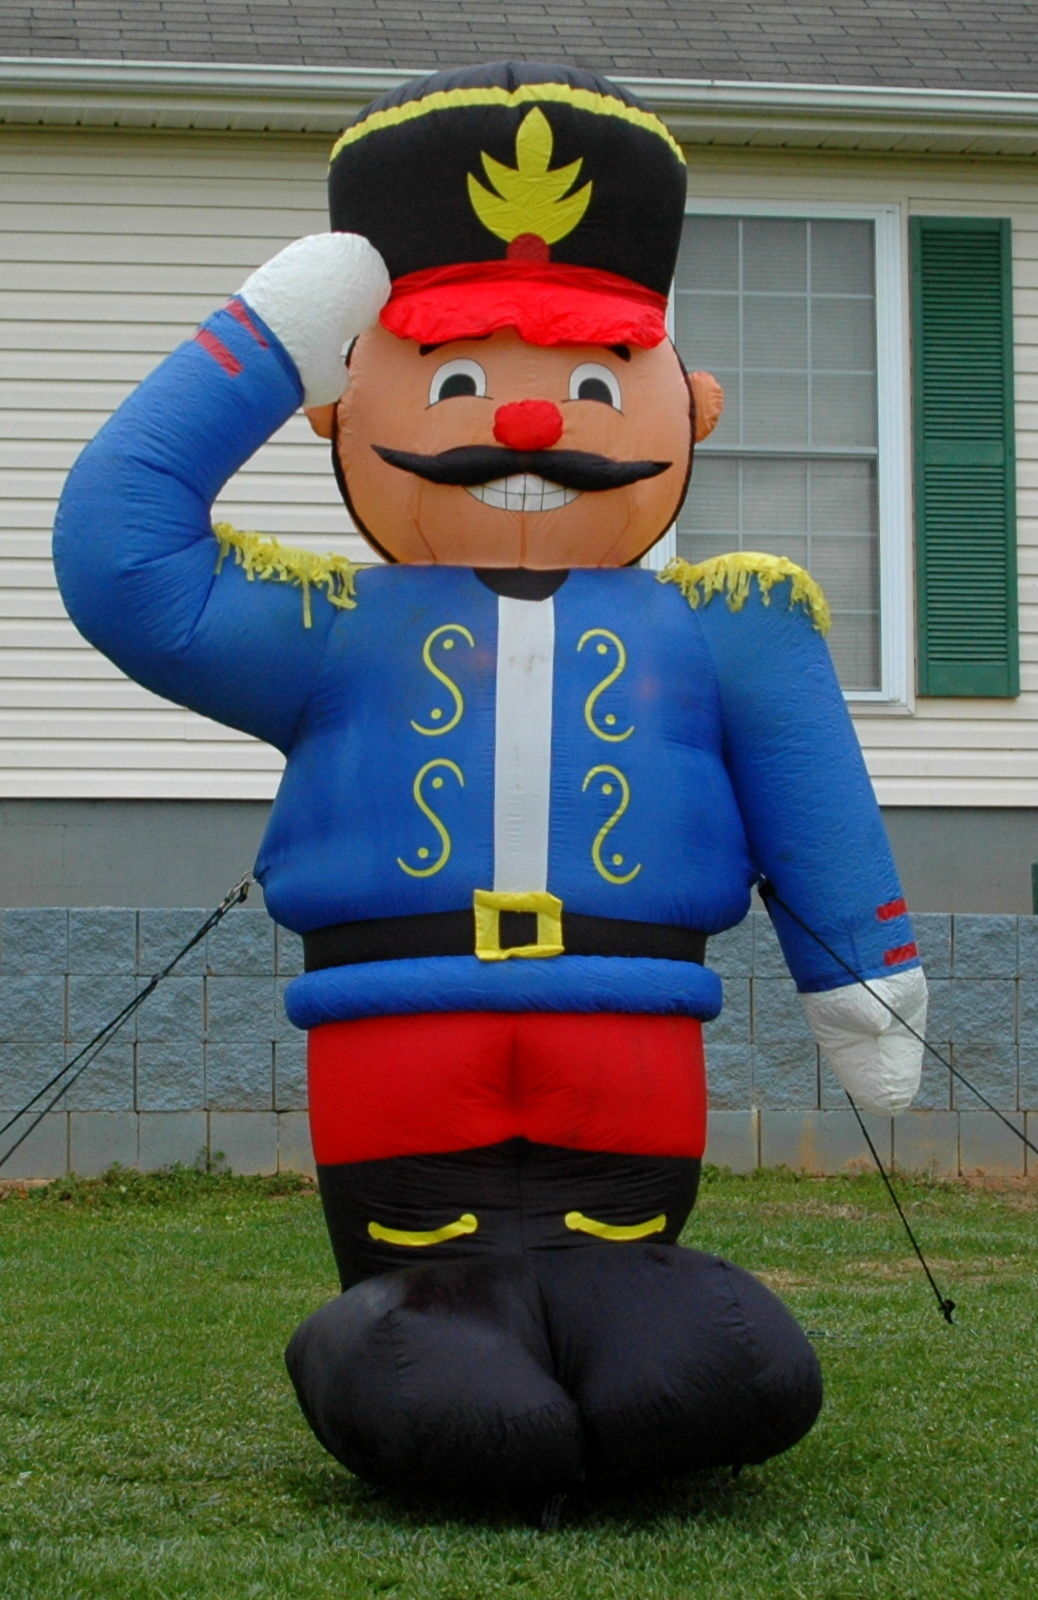 Image - GEMMY 8FT TOY SOLDIER NUTCRACKER LIGHTED AIRBLOWN ...